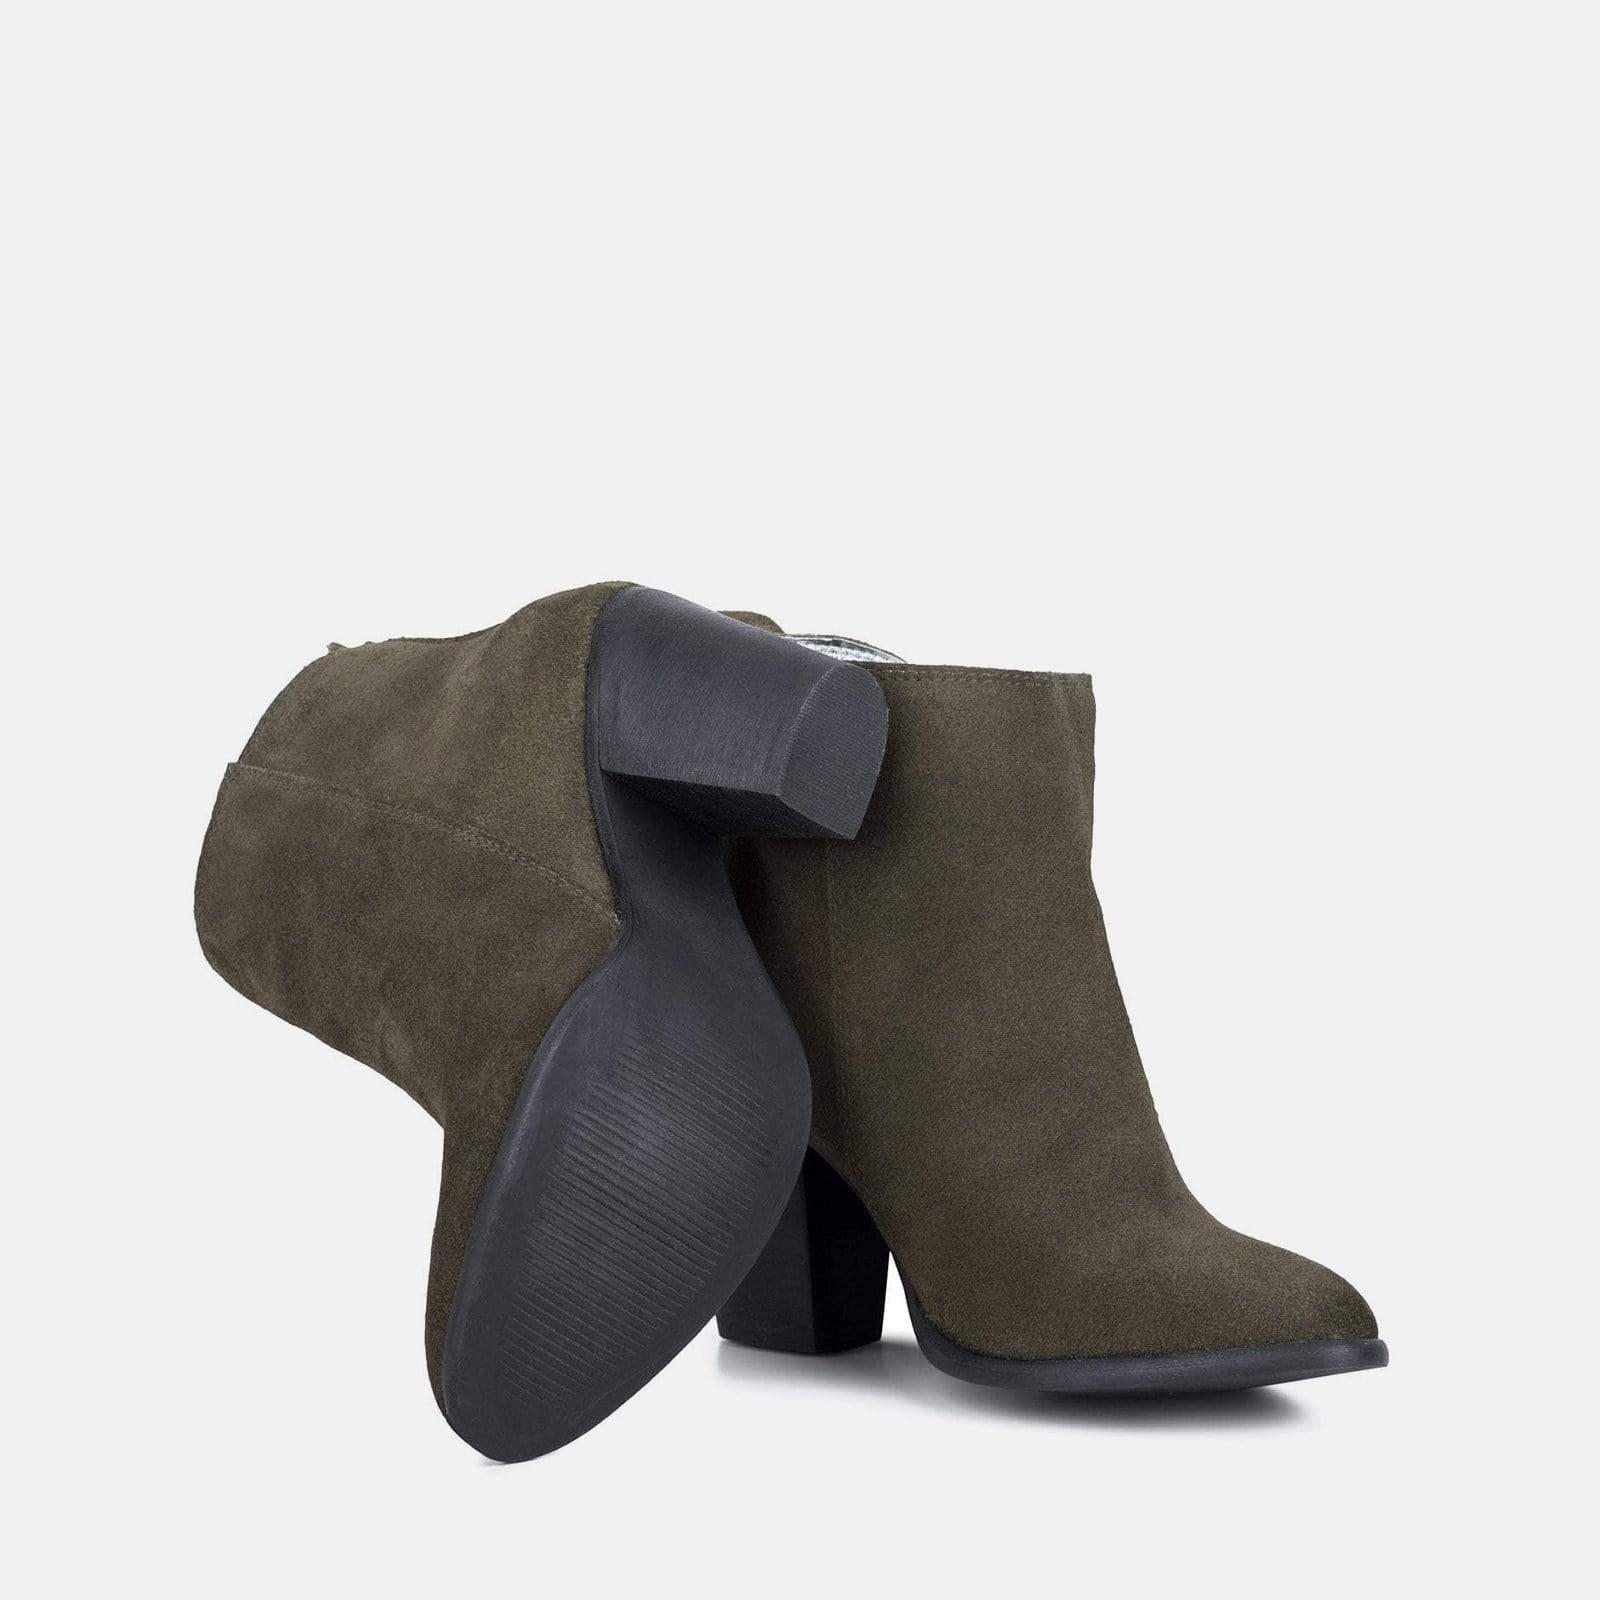 GENEVIEVE KHAKI SUEDE ANKLE BOOT